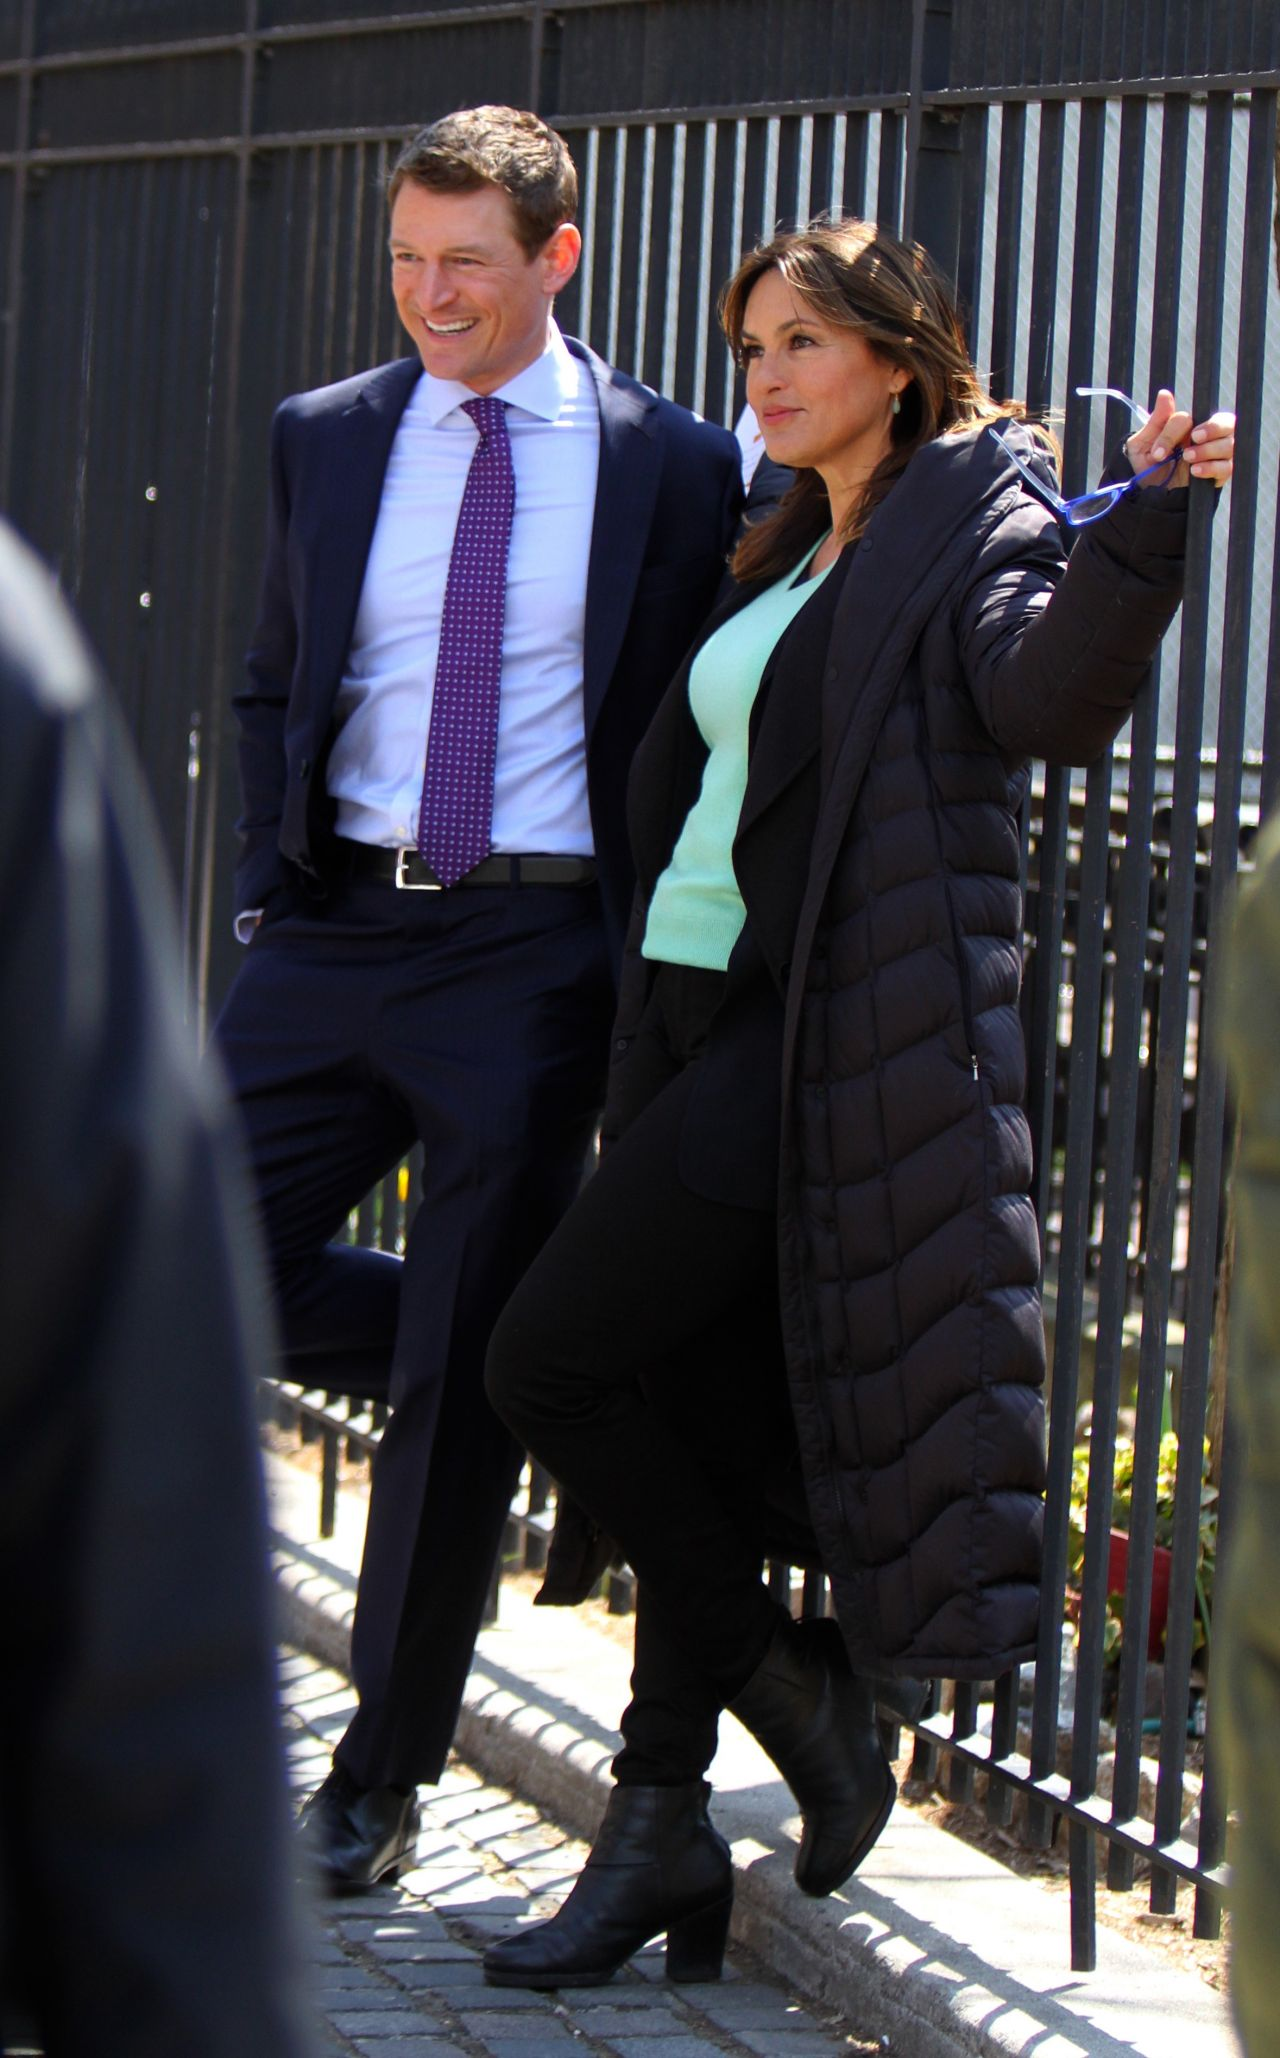 Mariska Hargitay Quot Law And Order Svu Quot Set In Uptown